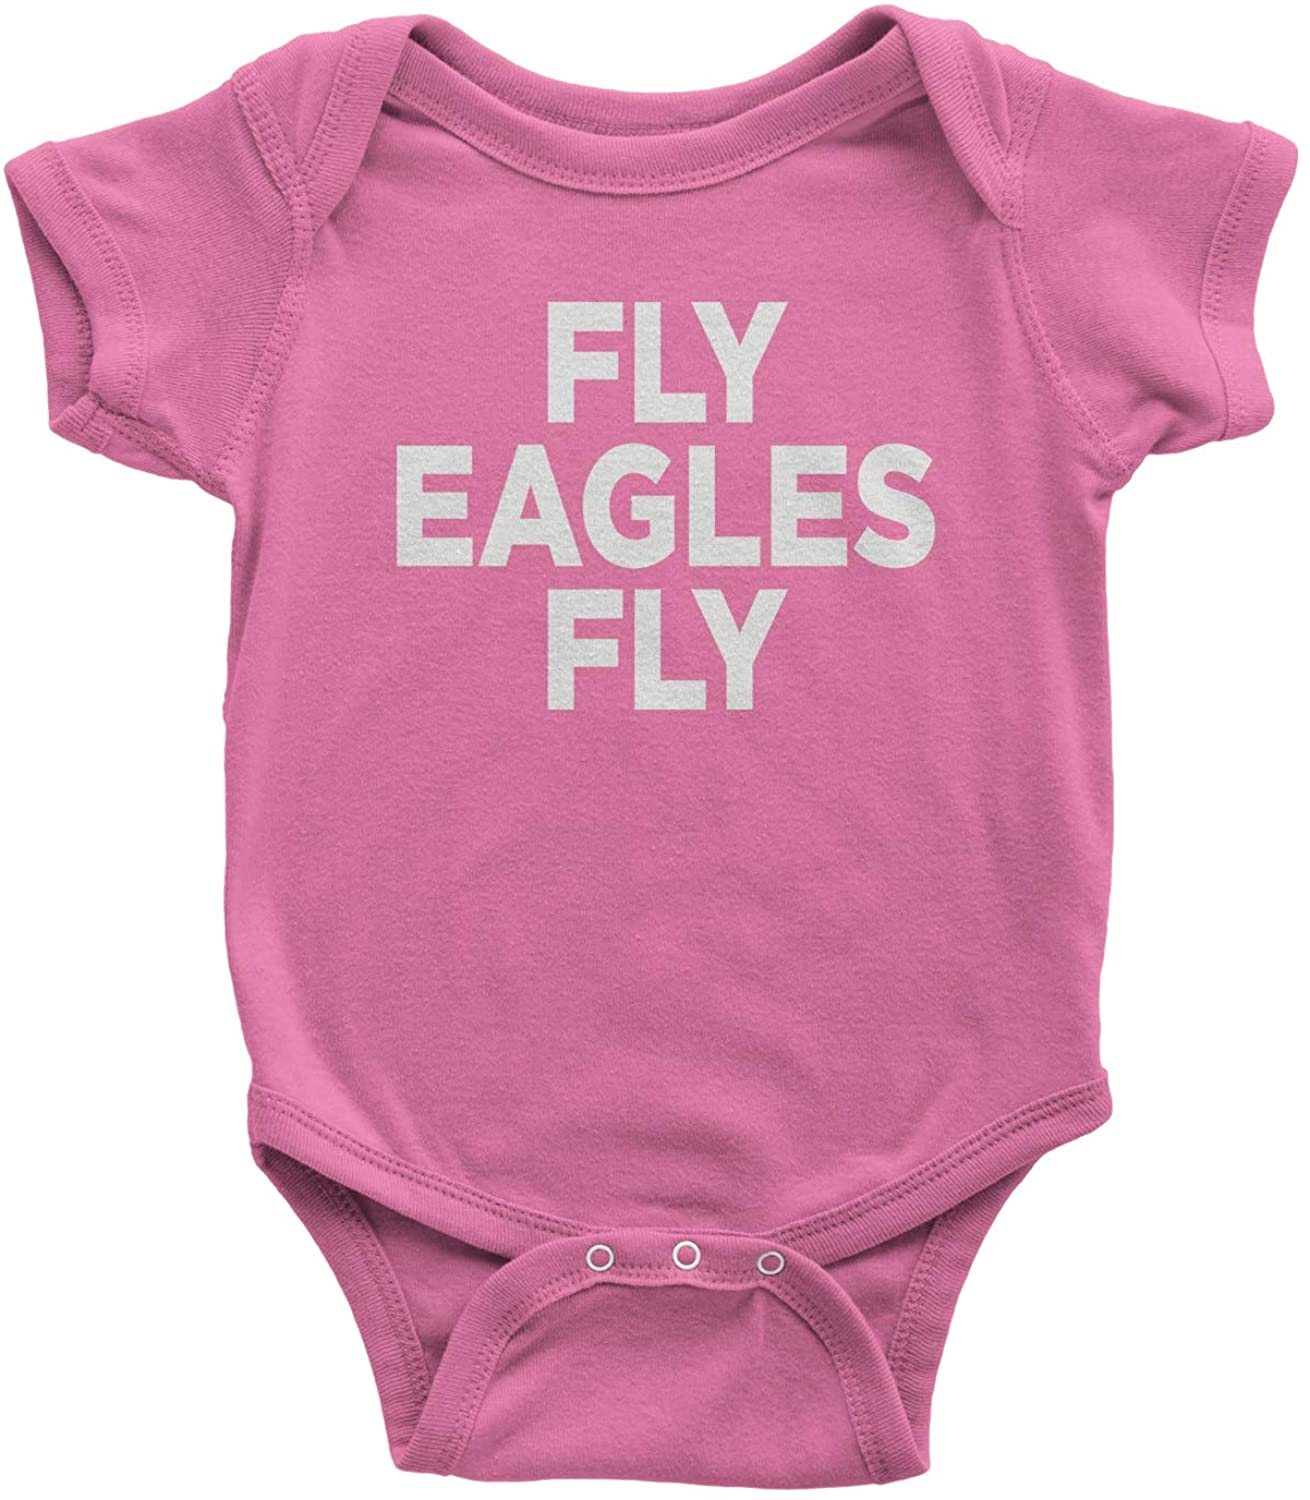 Expression Tees Fly Eagles Fly Infant One-Piece Romper Bodysuit